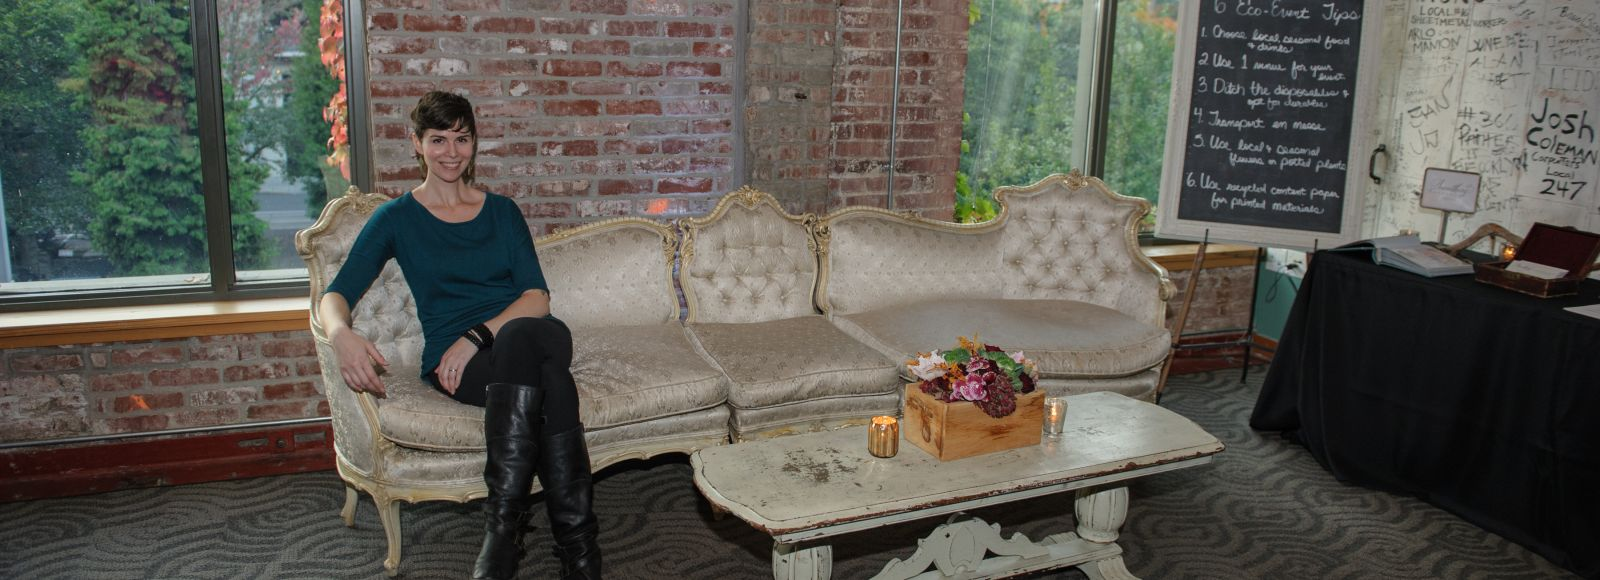 Woman sitting on vintage couch, smiling, in front of a brick wall in the Ecotrust building, Portland Oregon